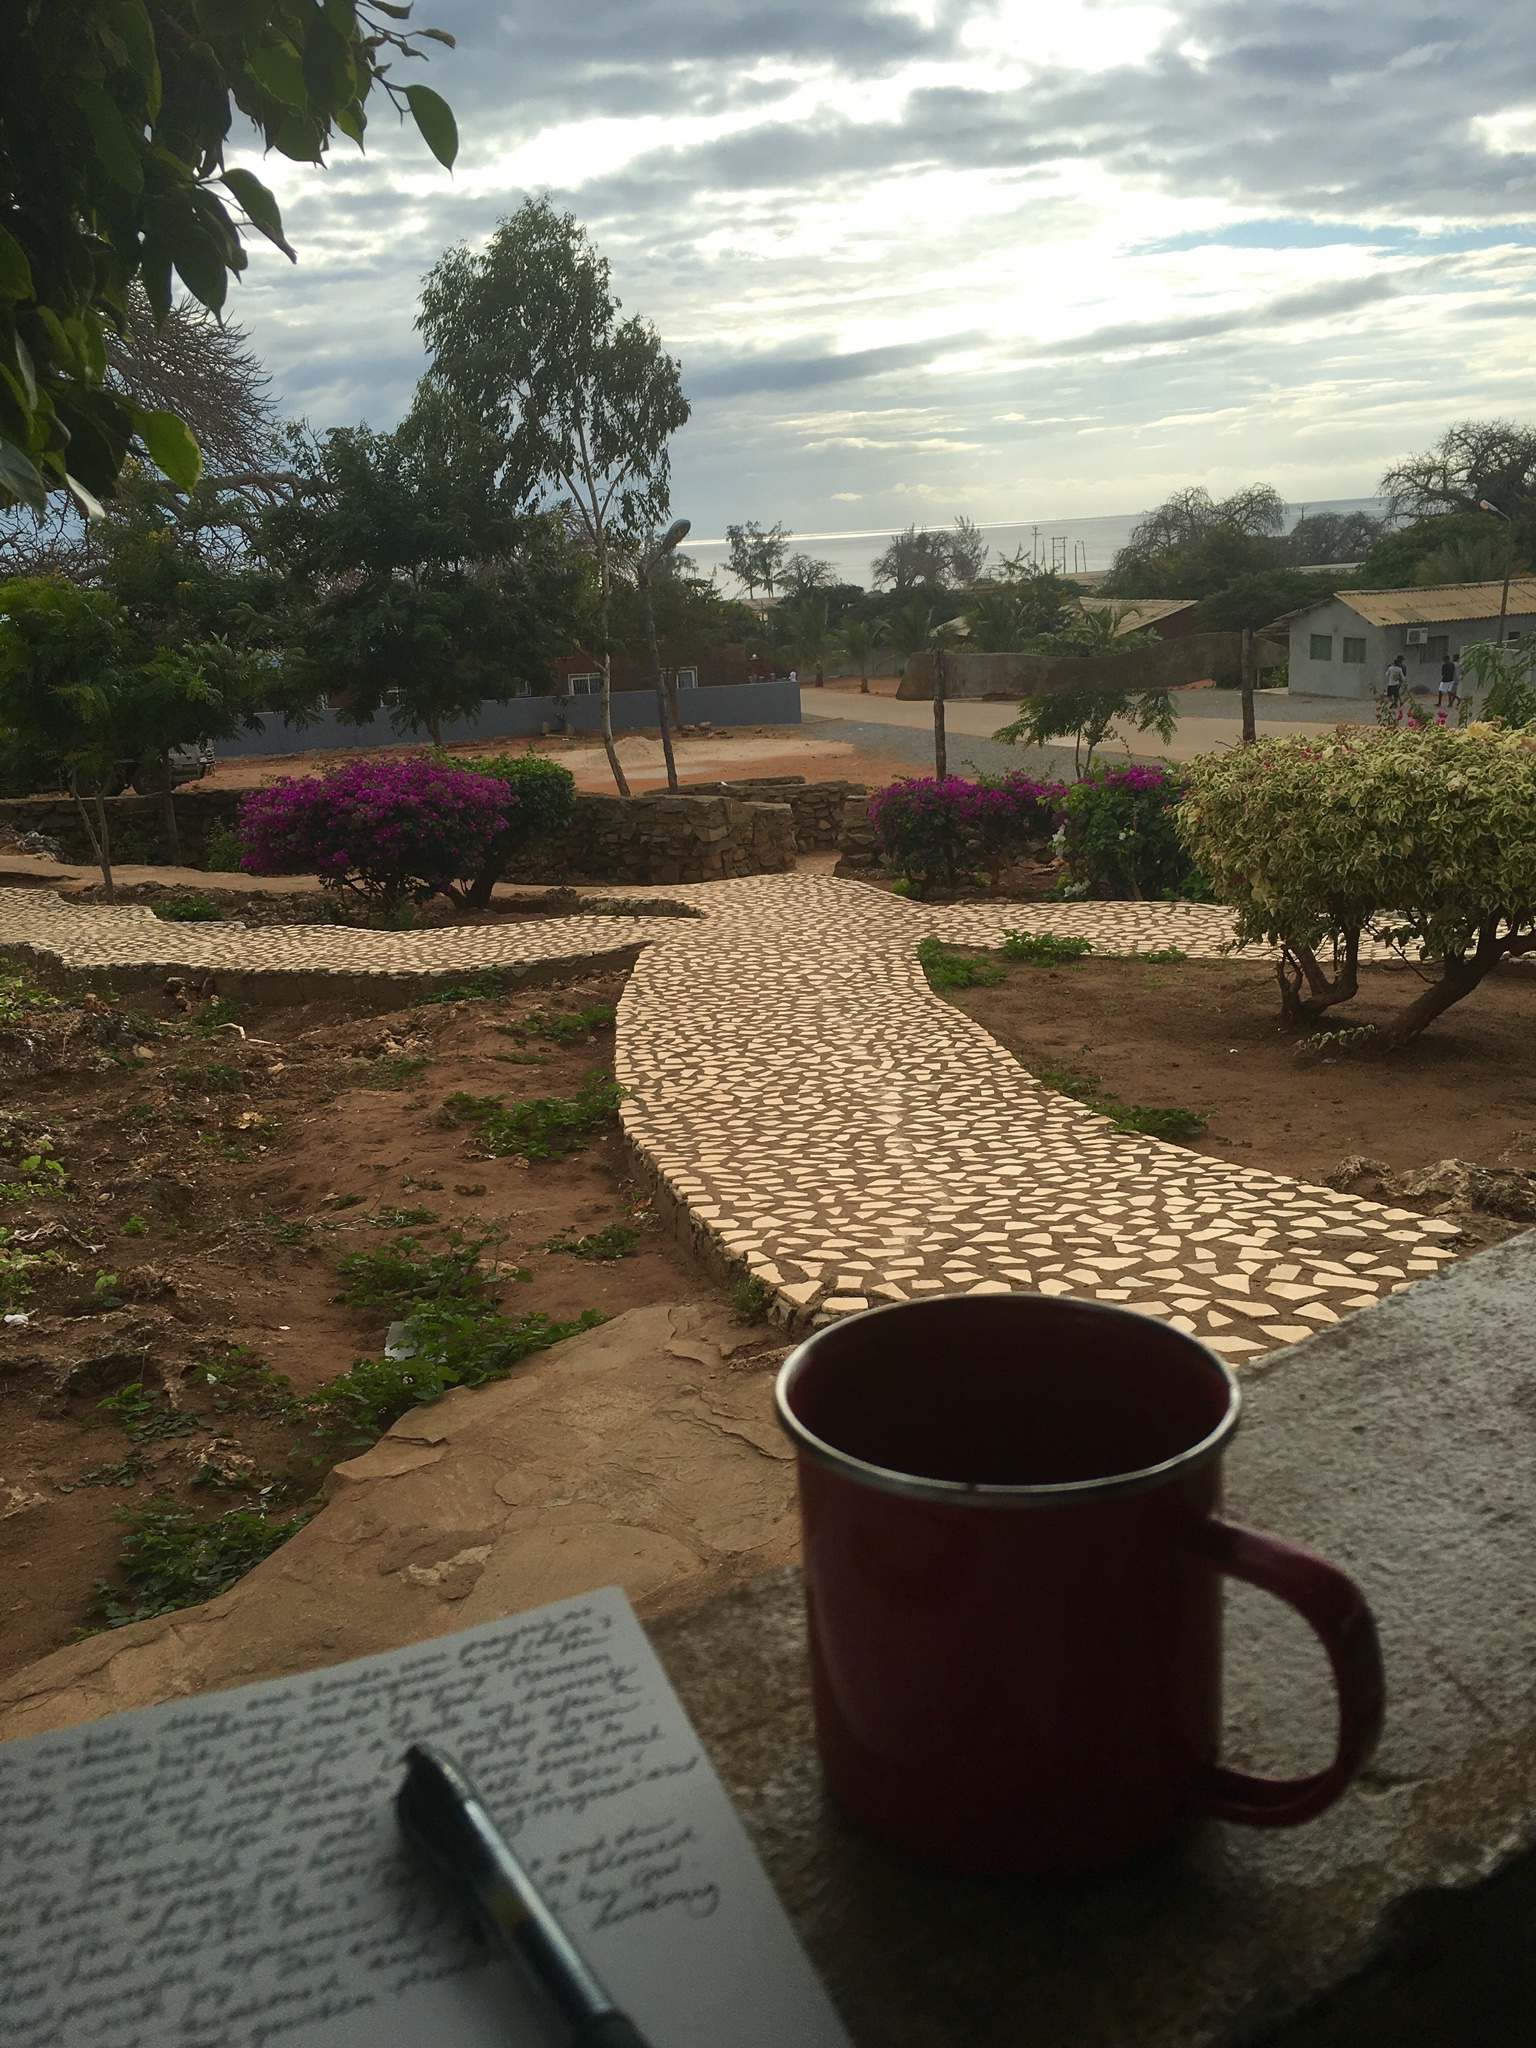 Morning coffee and quiet time looking out from prayer garden toward the Indian Ocean